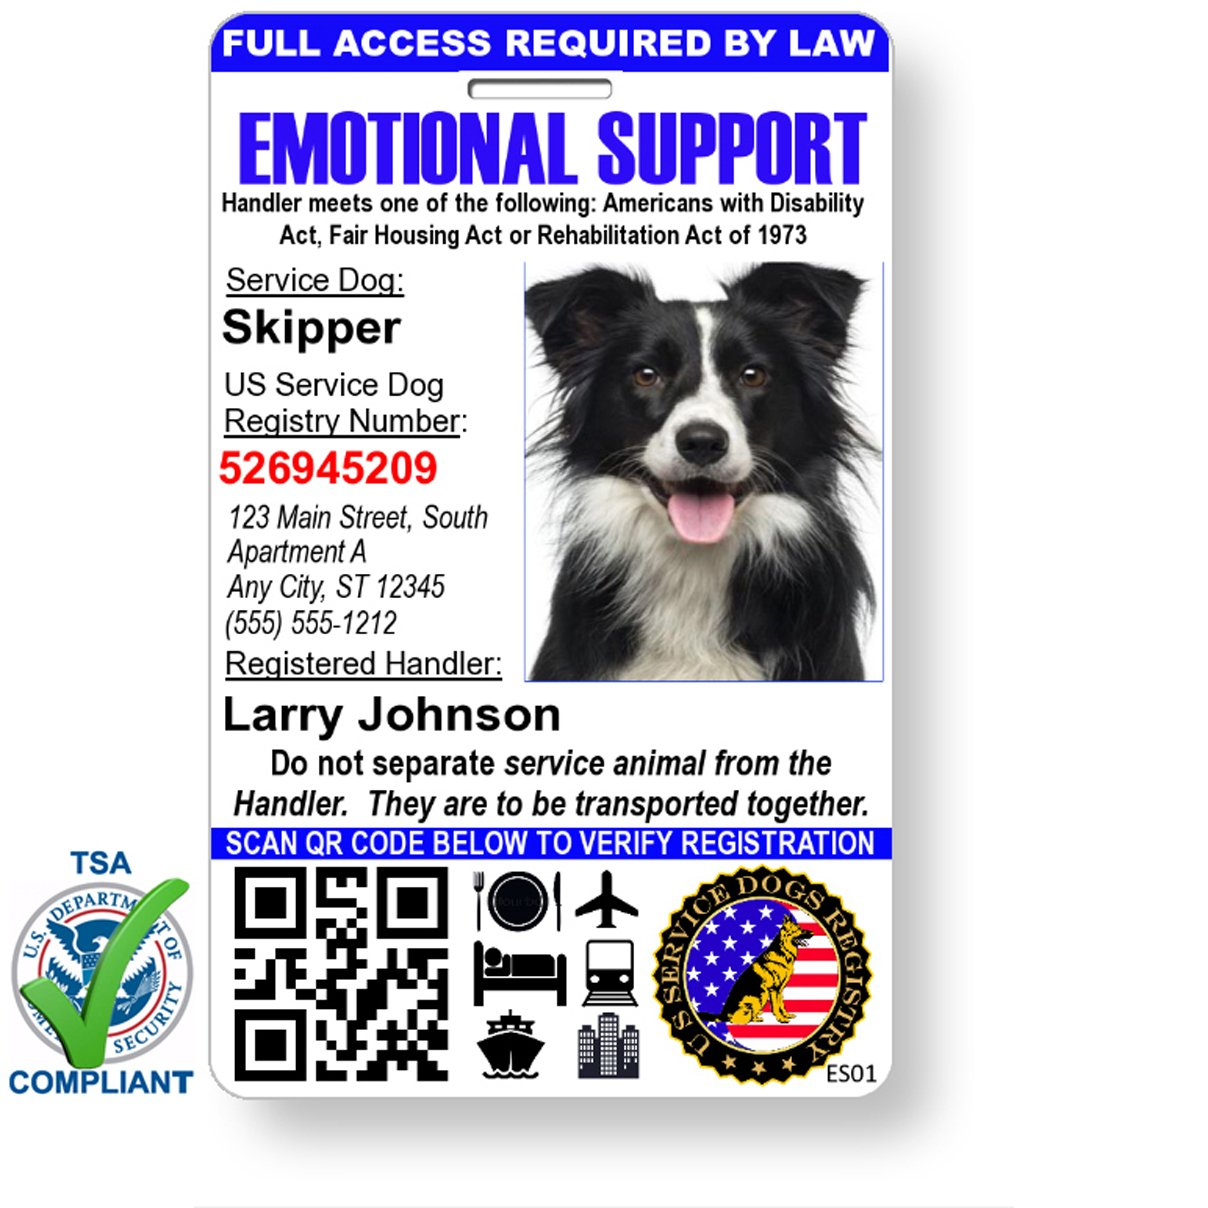 Just 4 Paws Custom Holographic QR Code Emotional Support Dog ID Card with Registration to Service Dogs Registry with Strap - Portrait Style